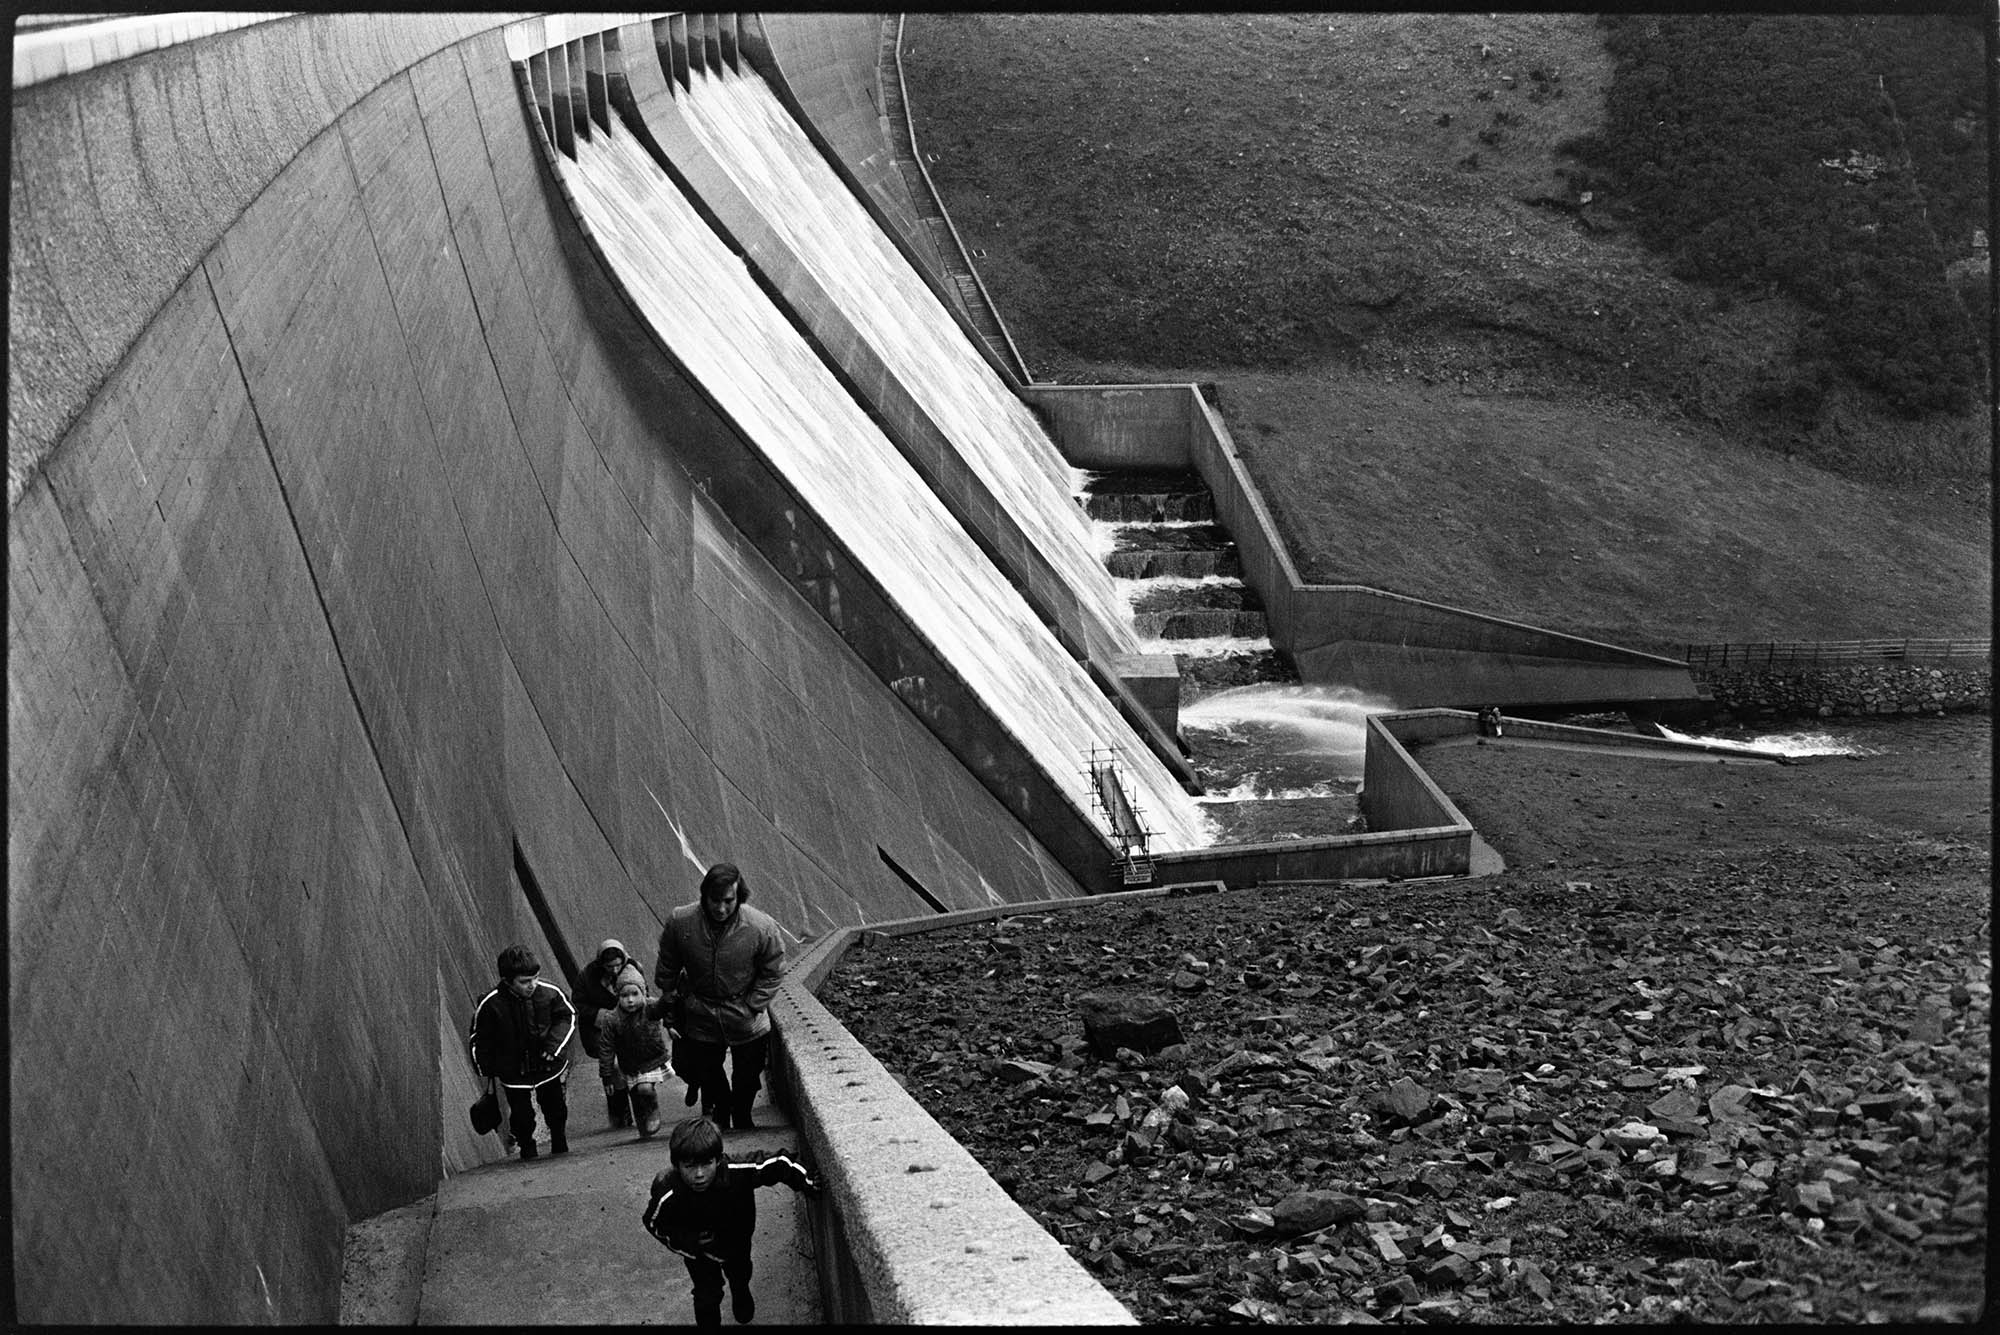 Water cascading over reservoir wall, Meldon. Documentary photograph by James Ravilious for the Beaford Archive © Beaford Arts